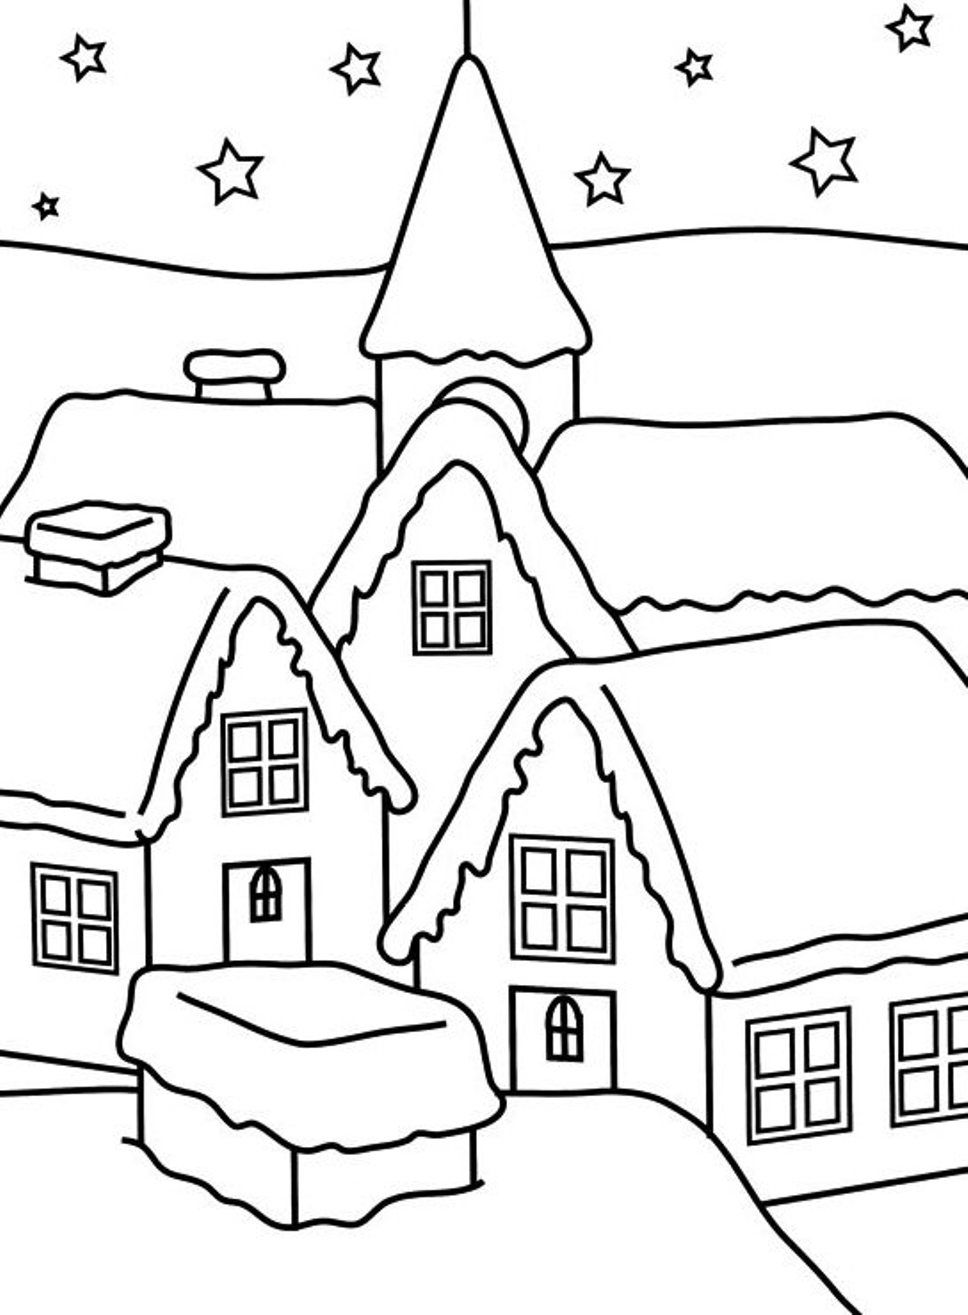 Download and print house of winter coloring pages for kids